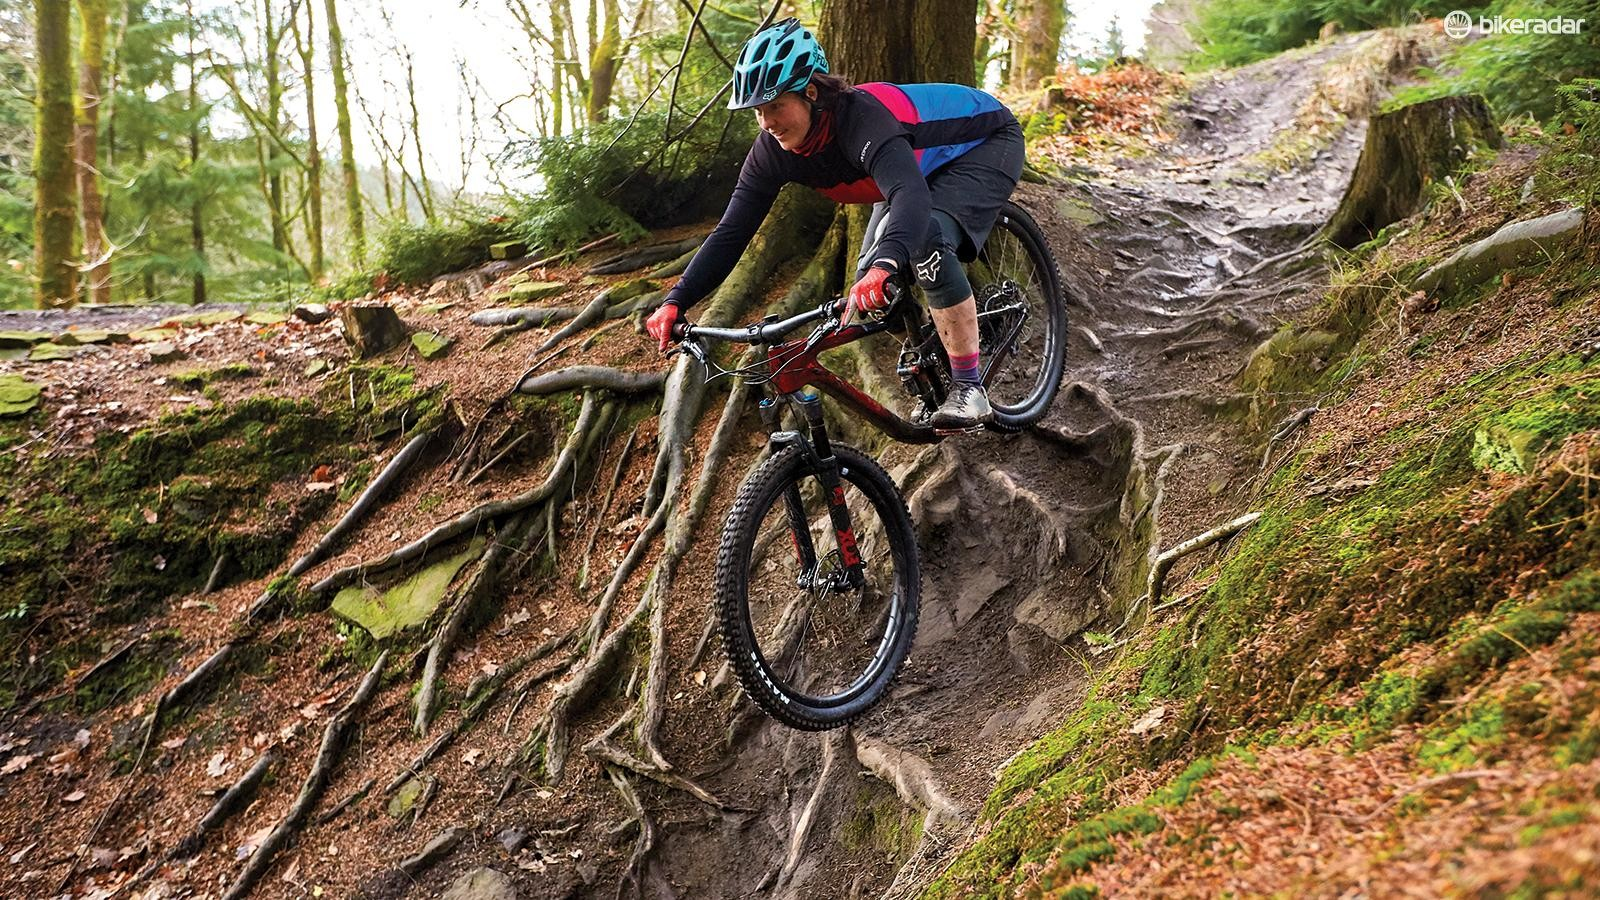 Liv has placed the rider in an aggressive yet comfortable position, which encourages experimentation with bigger, badder trail features